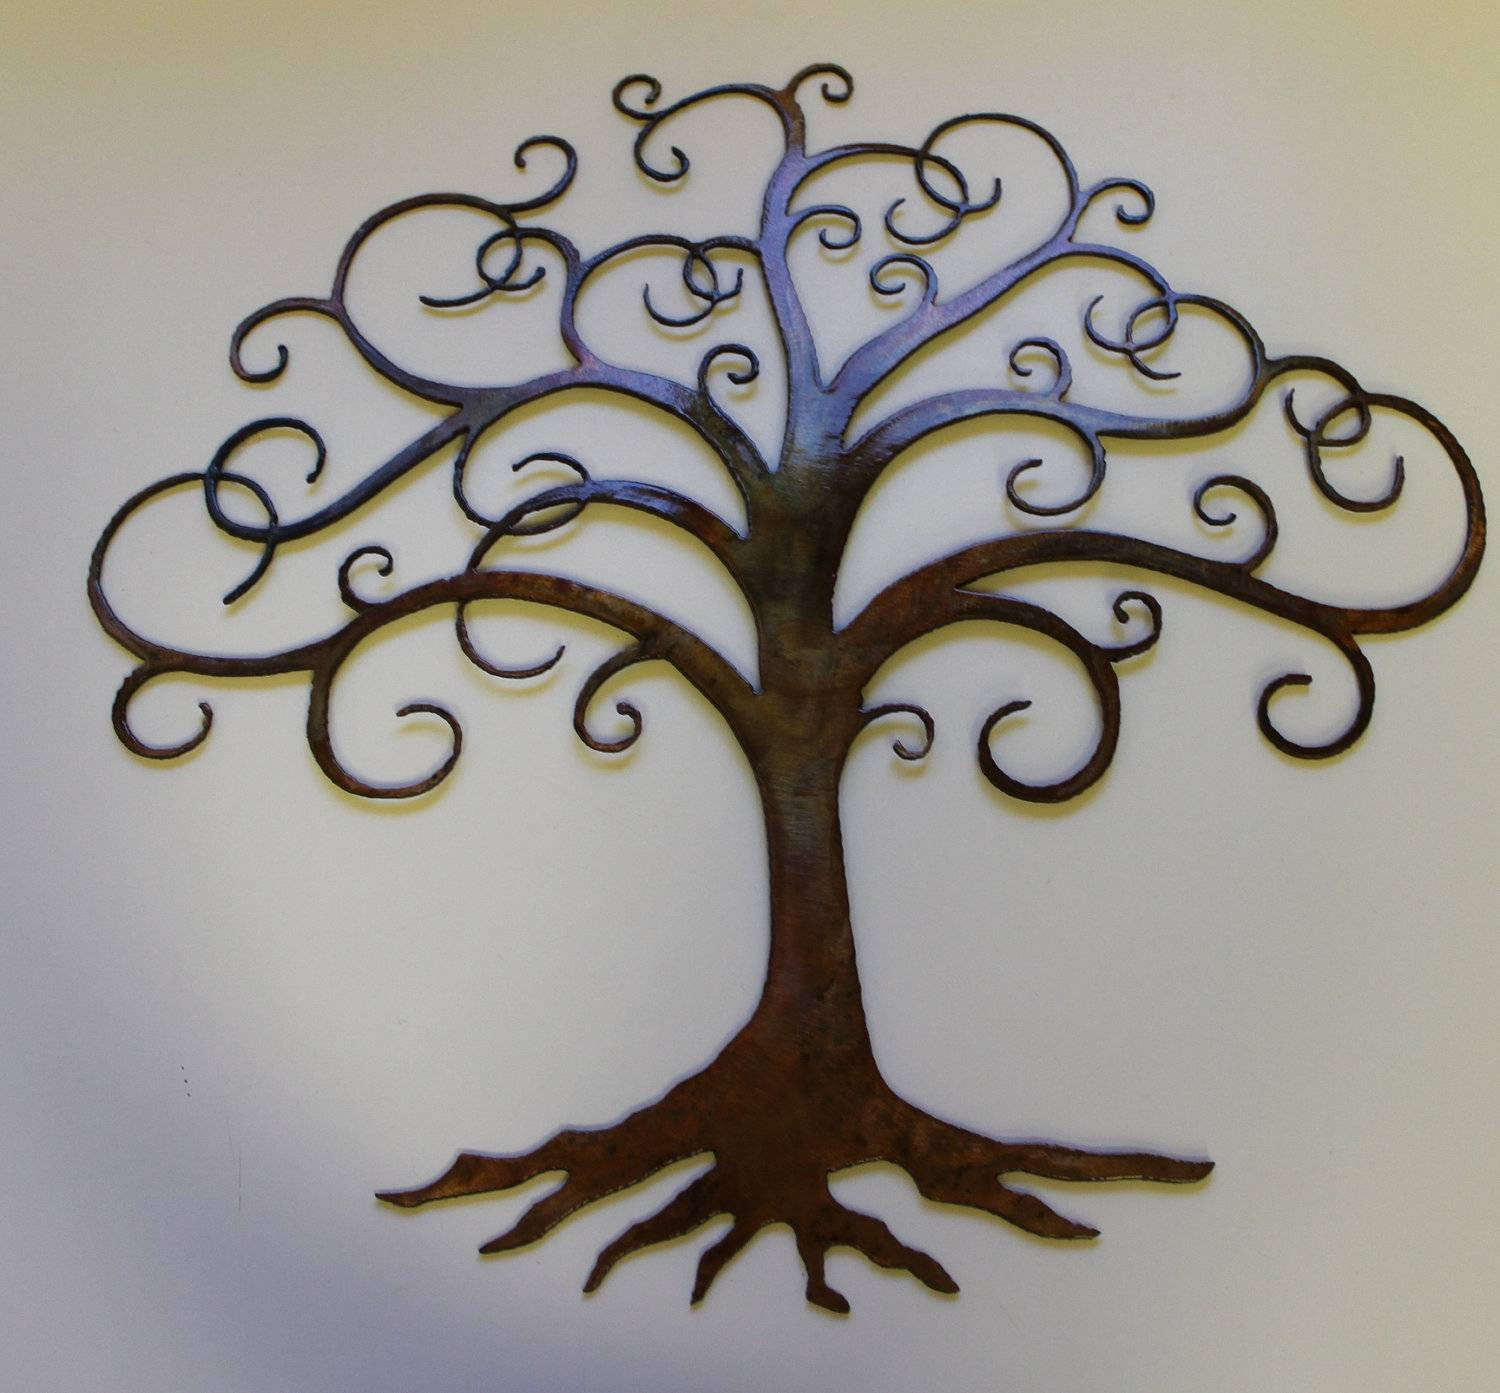 Wall Art Designs: Metal Wall Art Trees Black Metal Wall Art Olive Throughout Most Recent Black Metal Wall Art Decor (View 16 of 20)